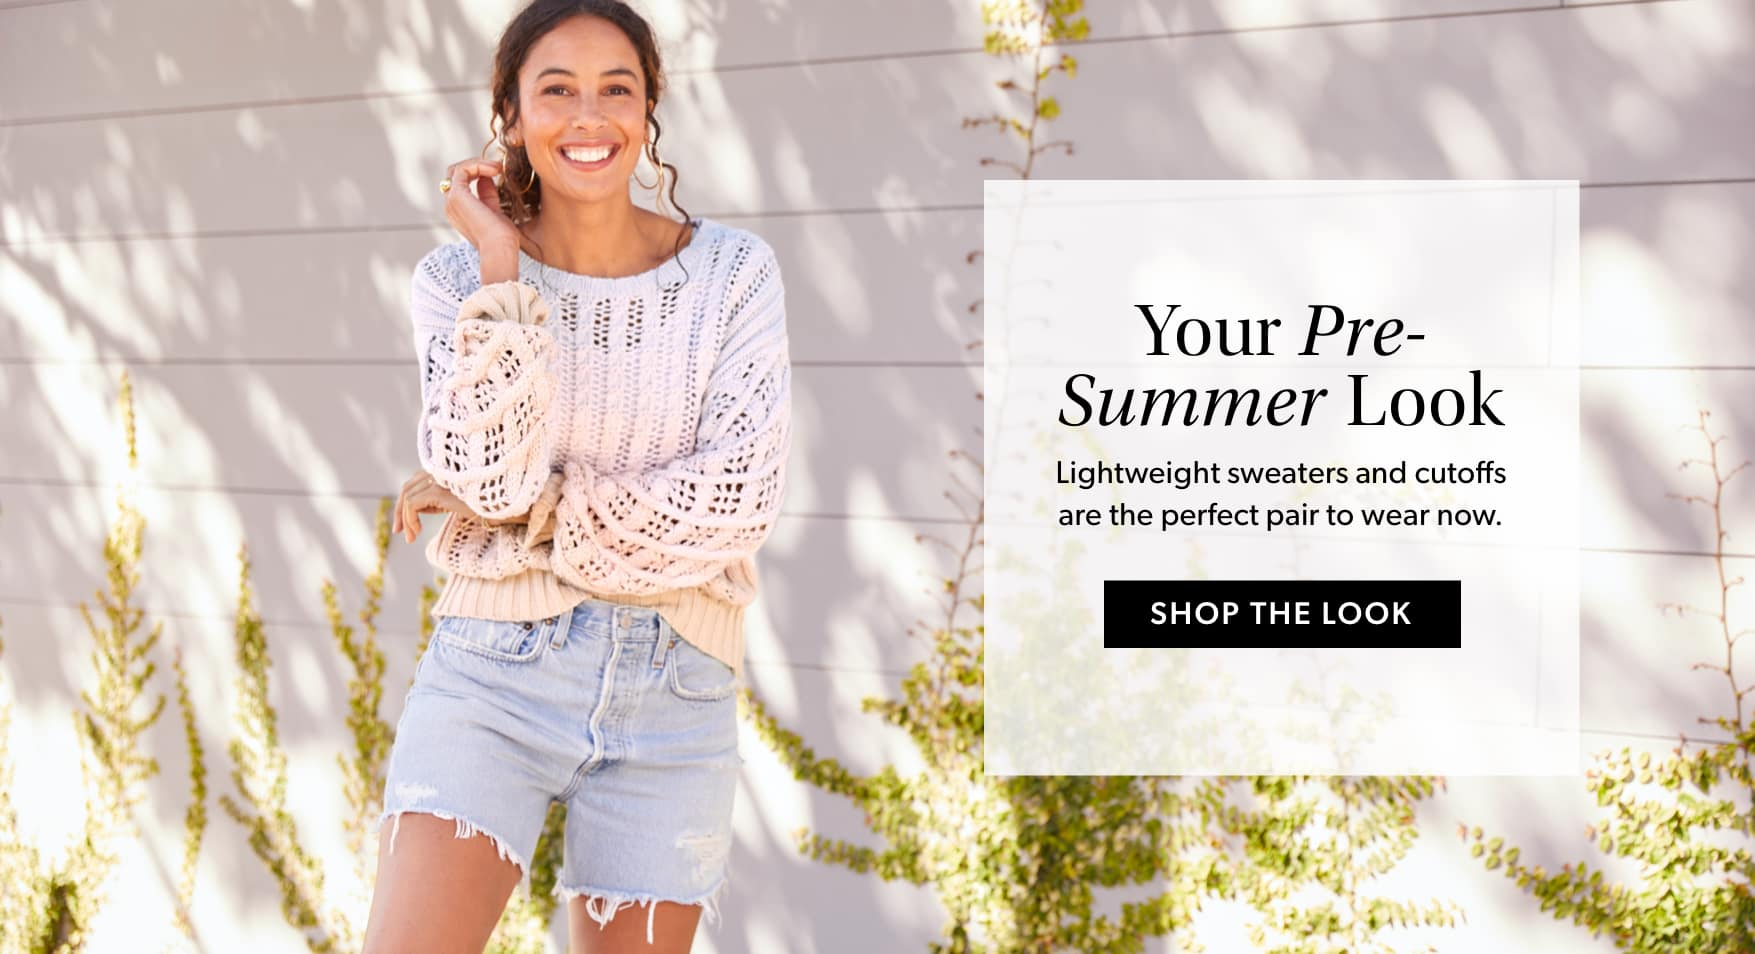 Your Pre-Summer Look – Lightweight sweaters and cutoffs are the perfect pair to wear now – SHOP THE LOOK.